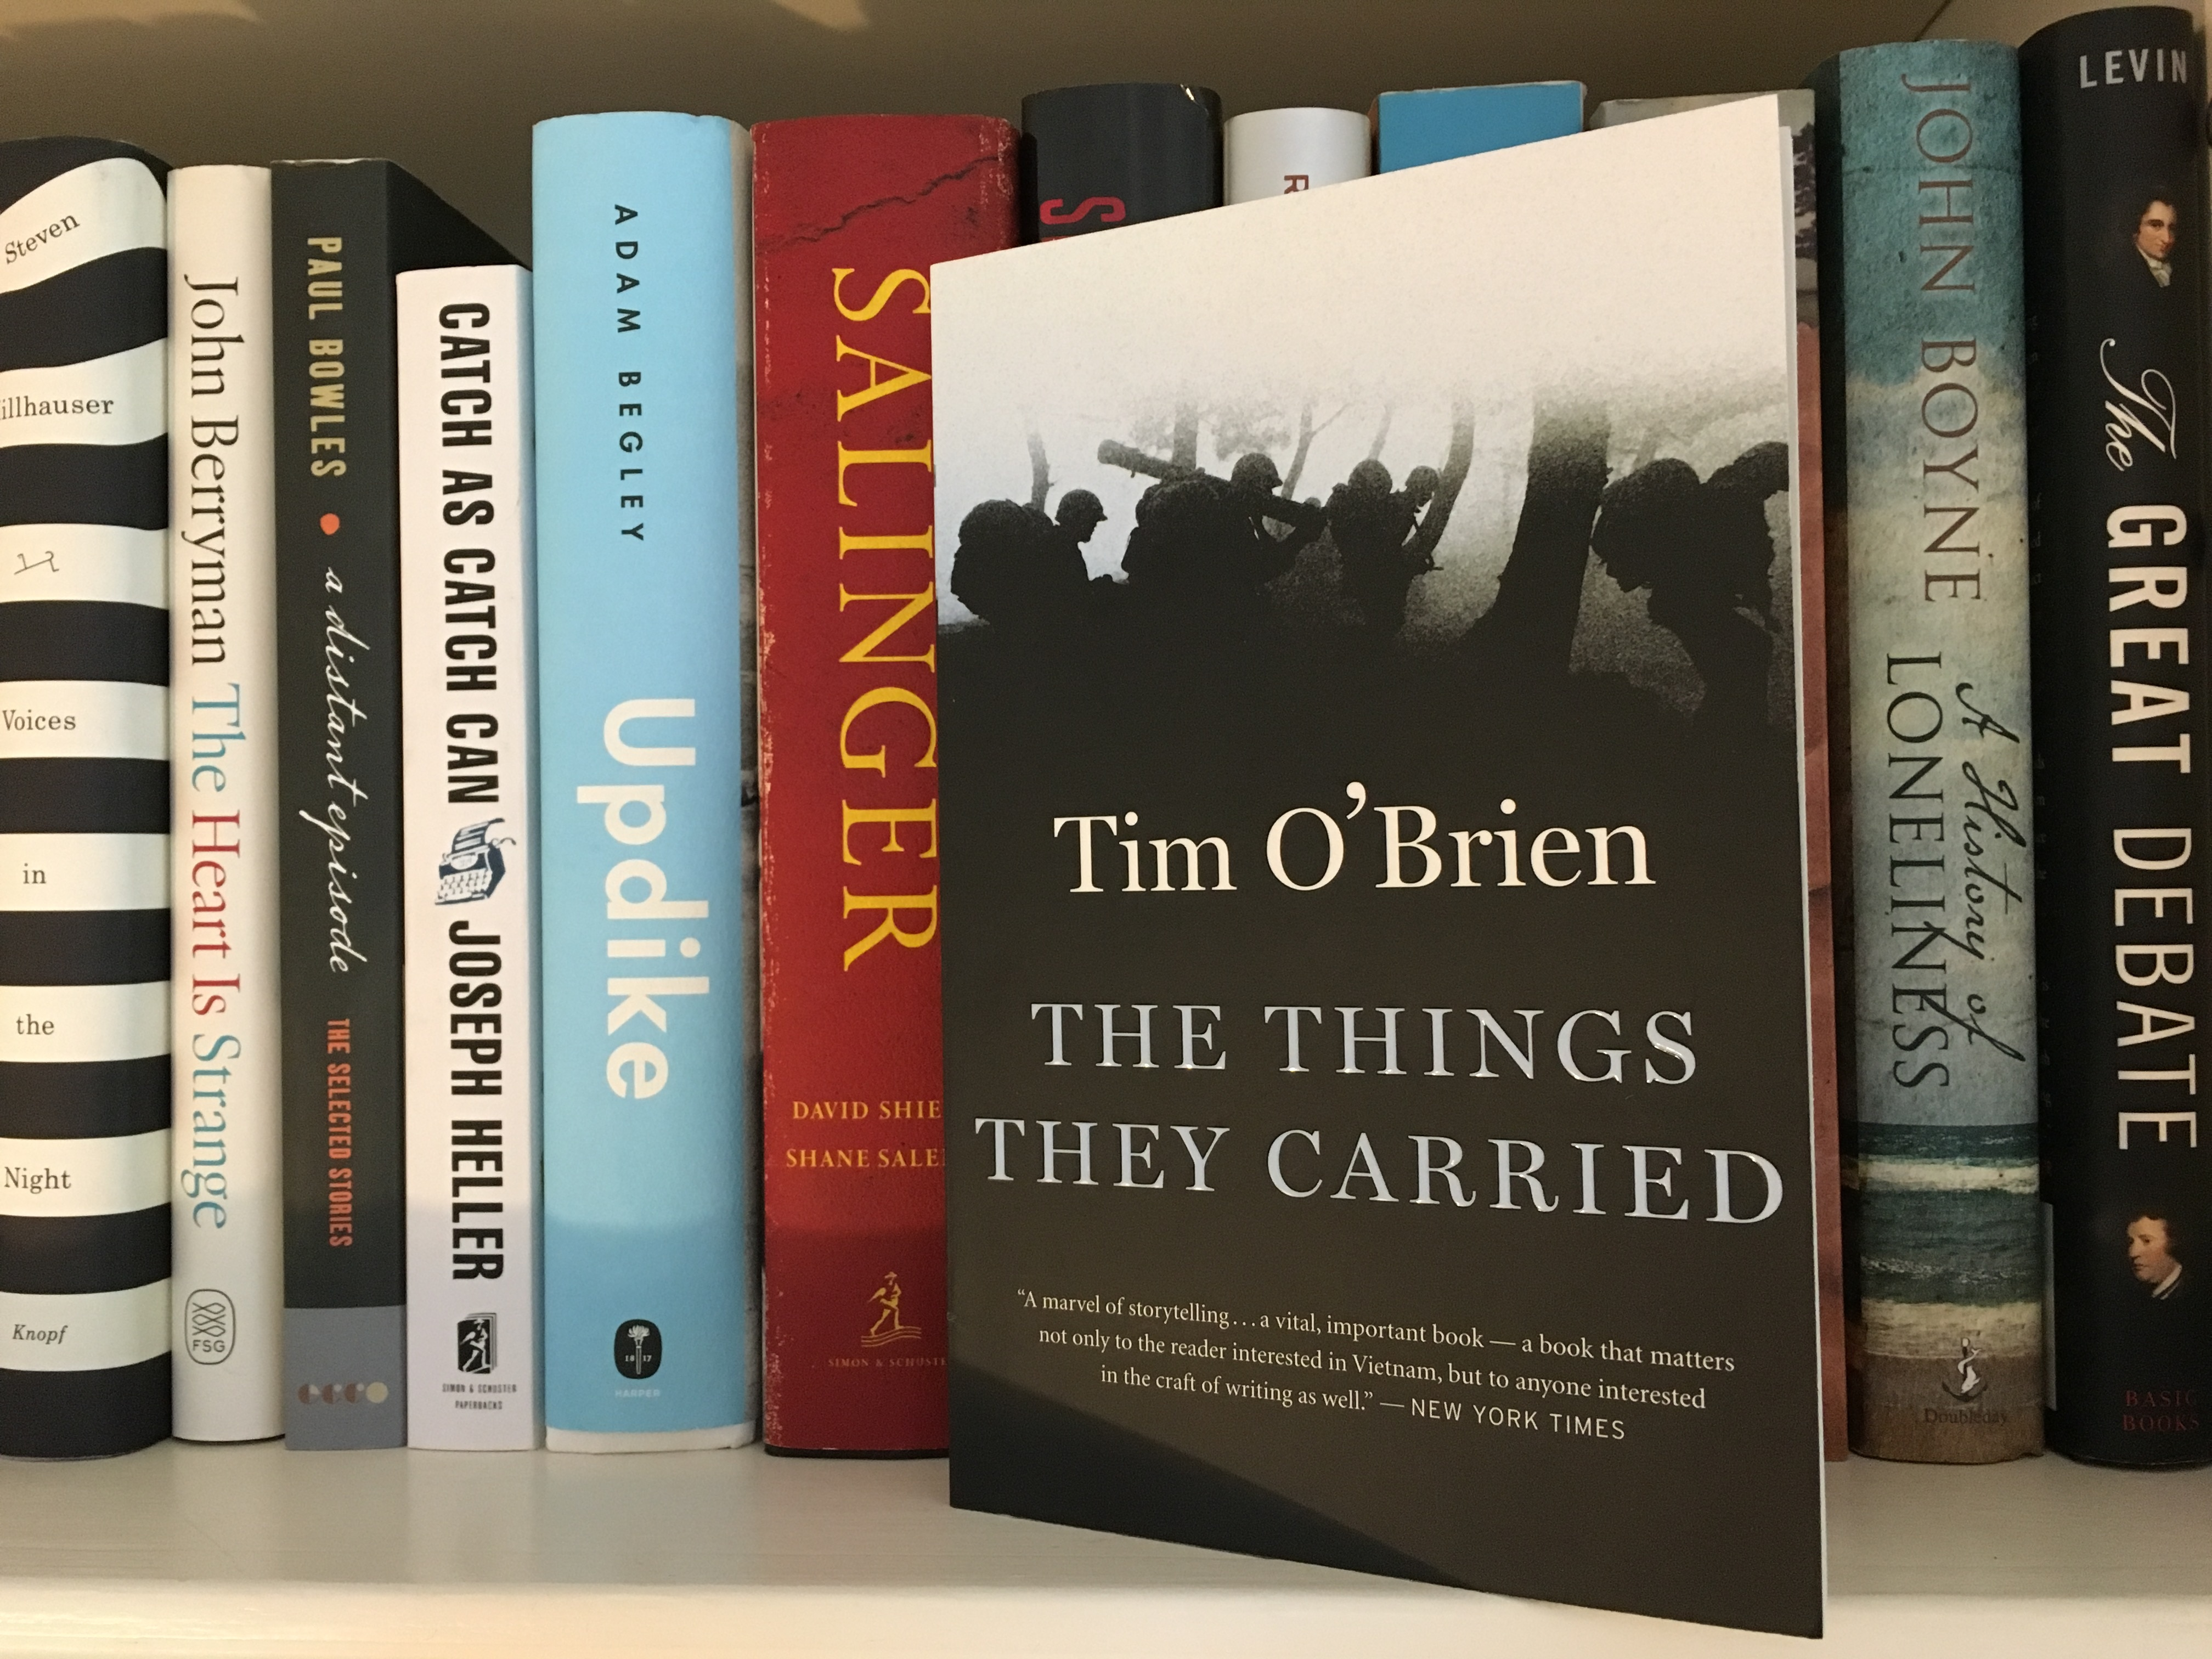 a review of tim obriens book the things they carried